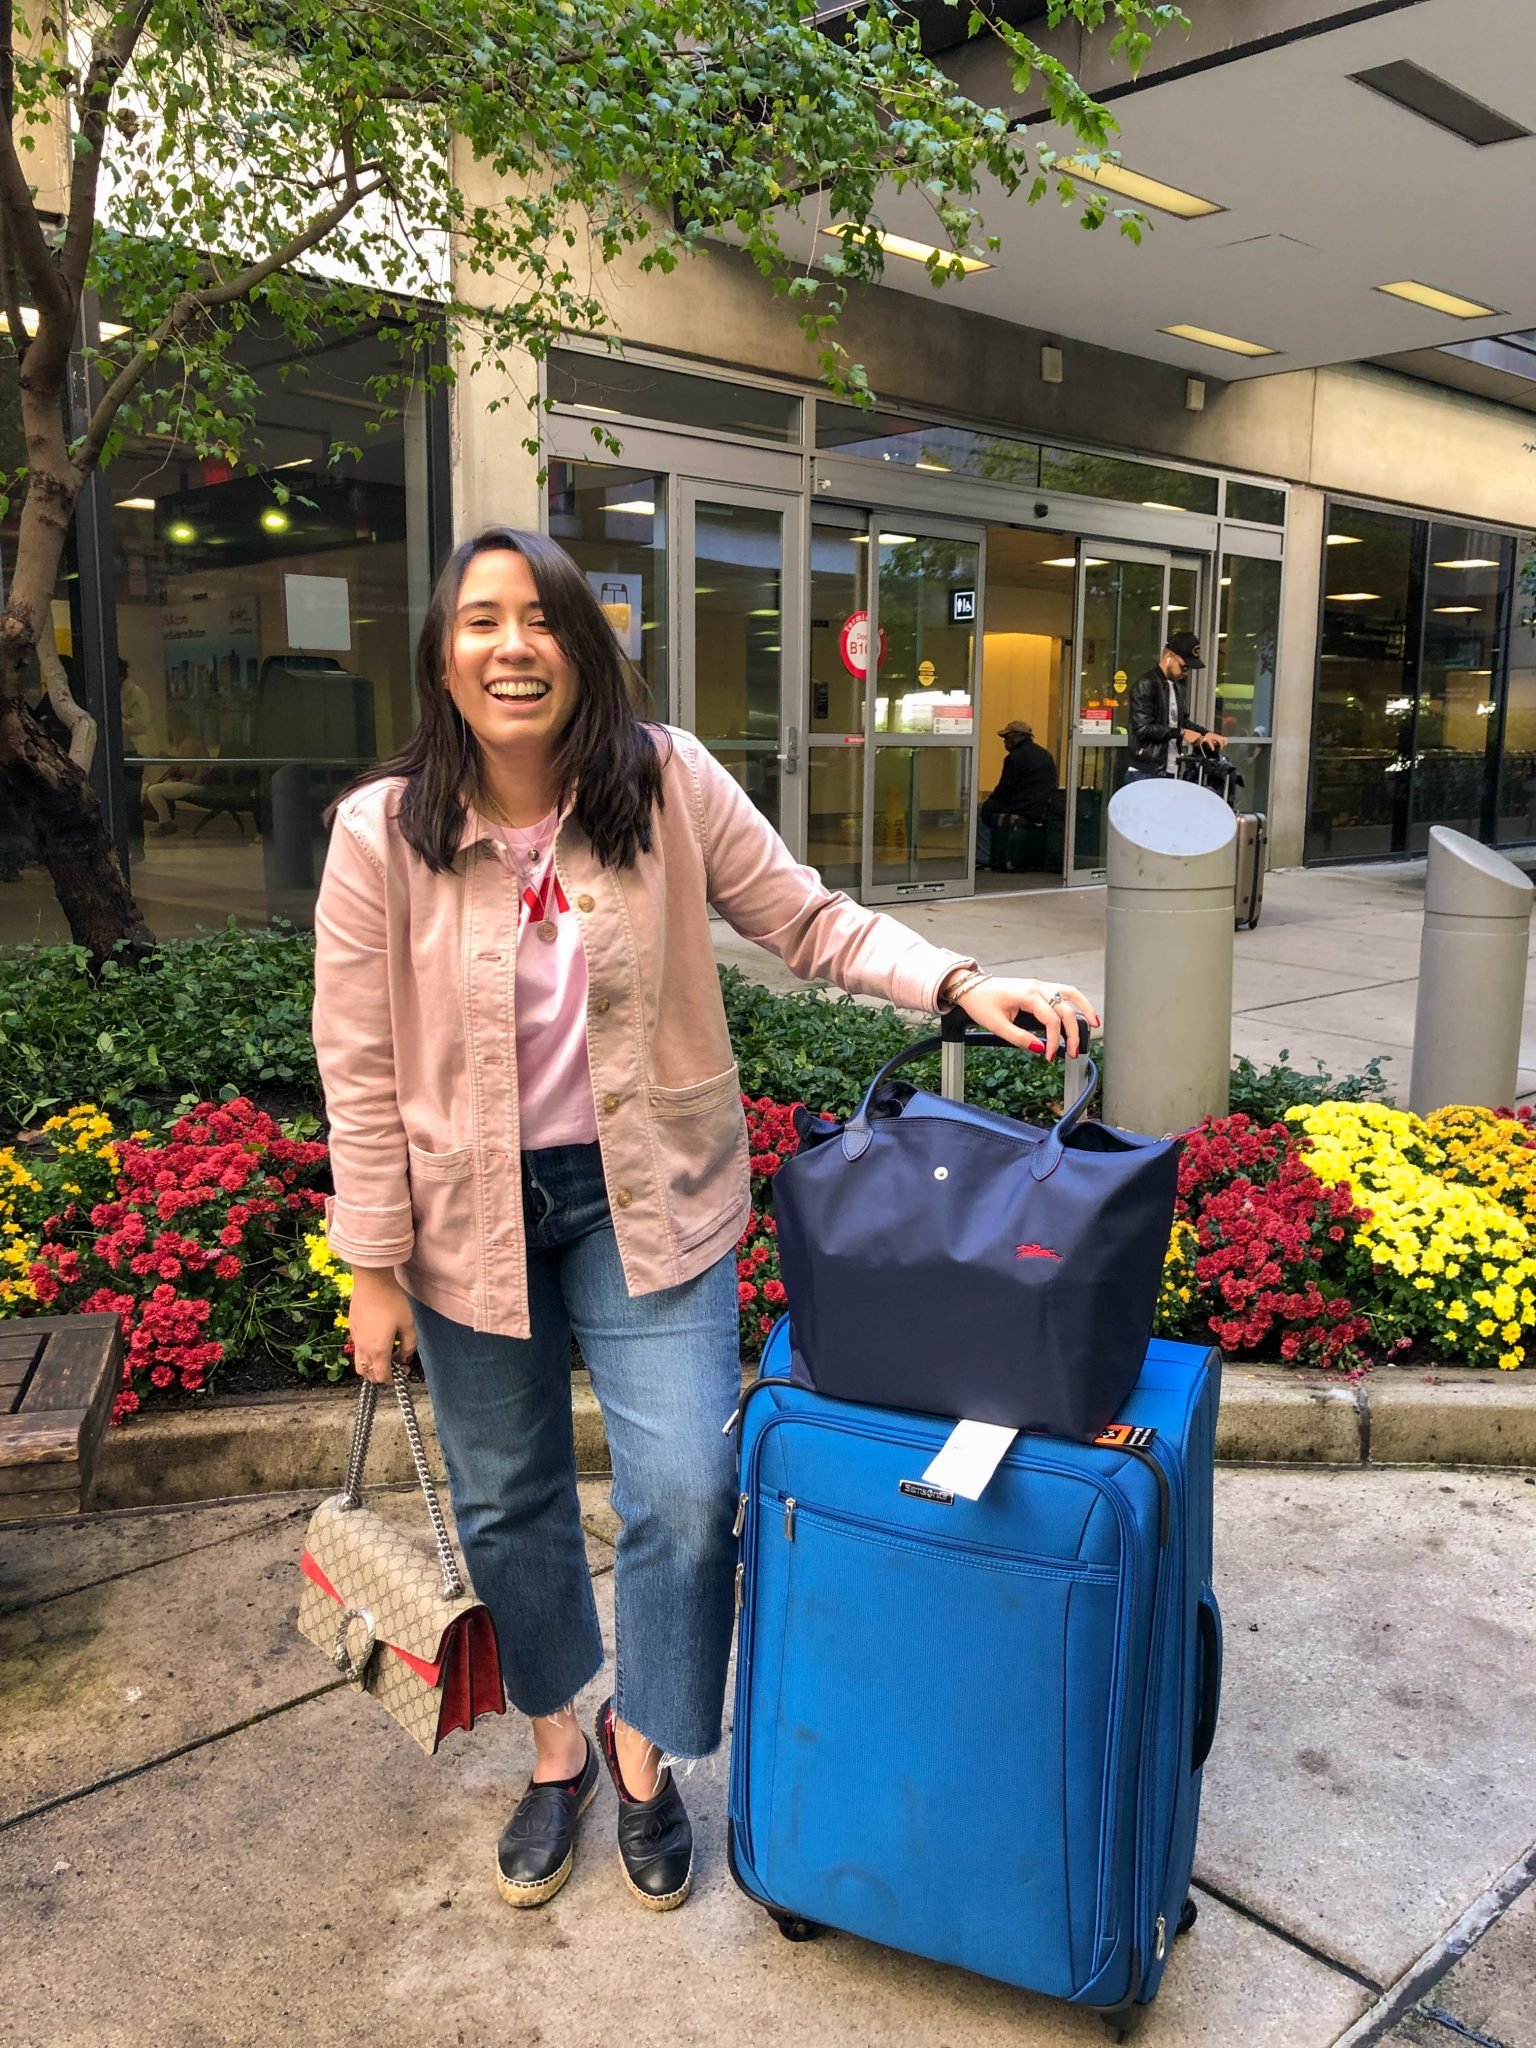 Friday Favorites :: Vietnamese Vacation 2020 by popular New York City lifestyle blog, Live Laugh Linda: image of a woman standing next to some luggage.